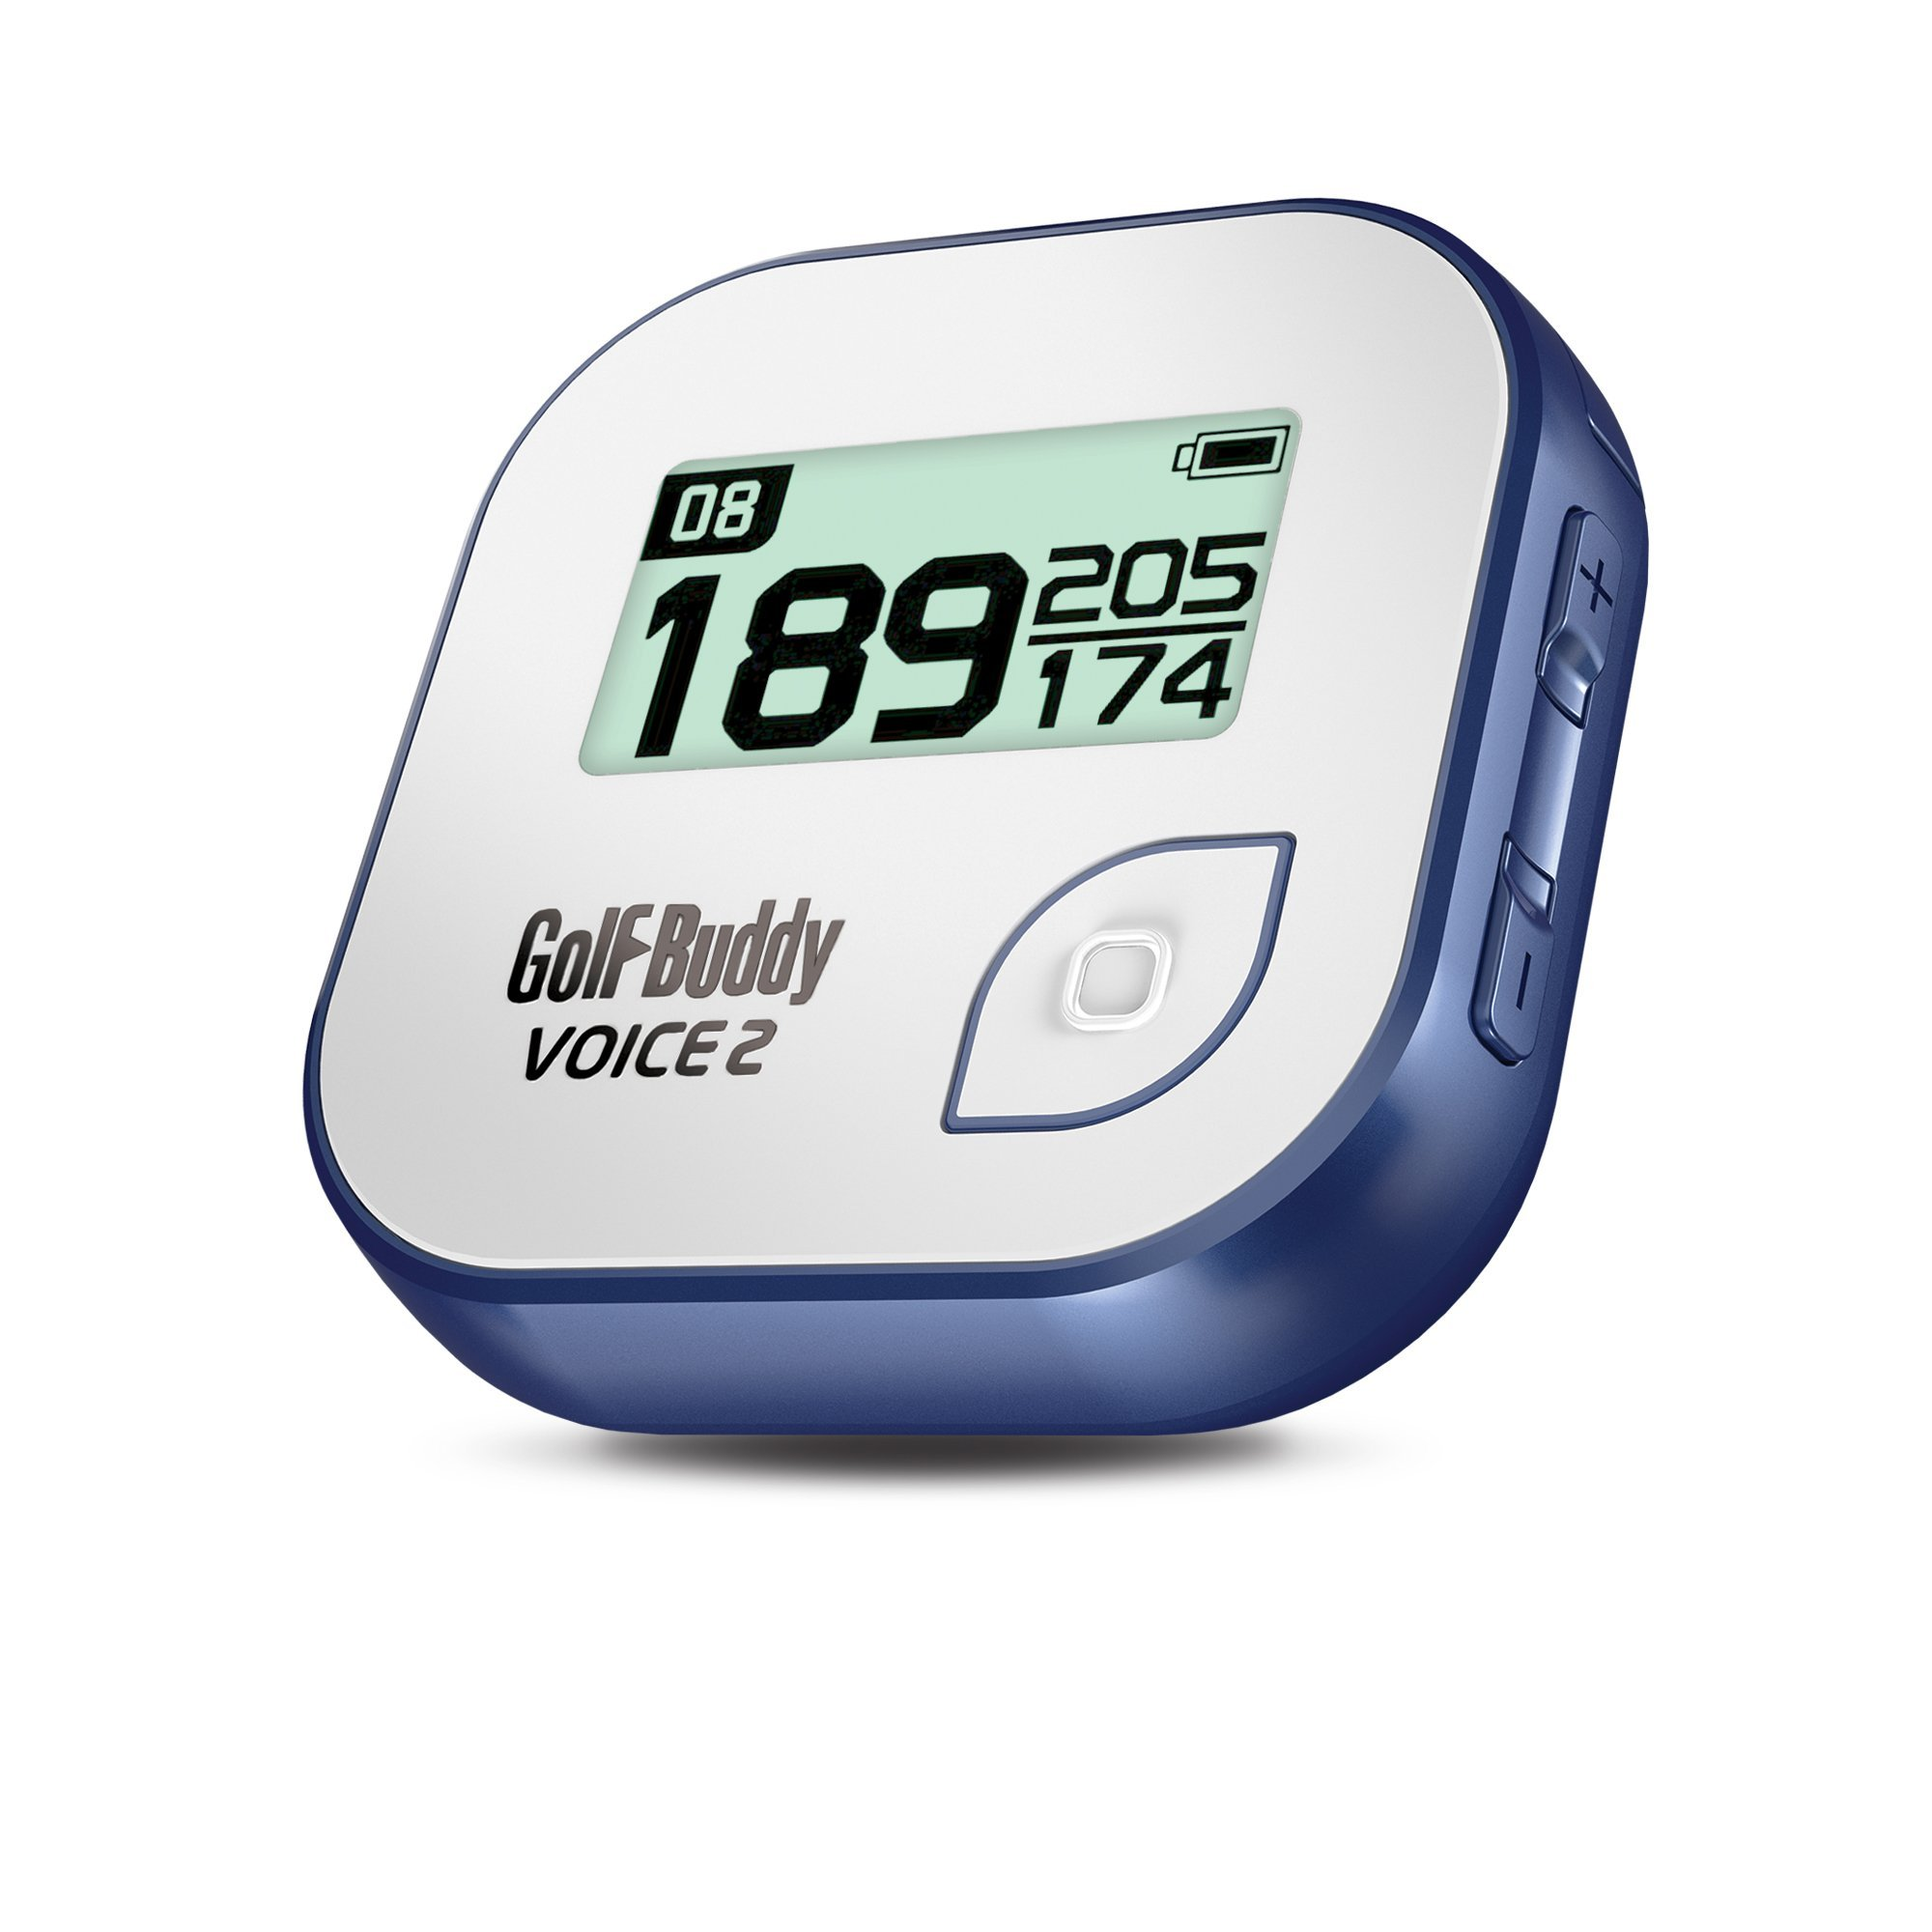 GolfBuddy Voice 2 Golf GPS/Rangefinder, White/Blue by Golf Buddy